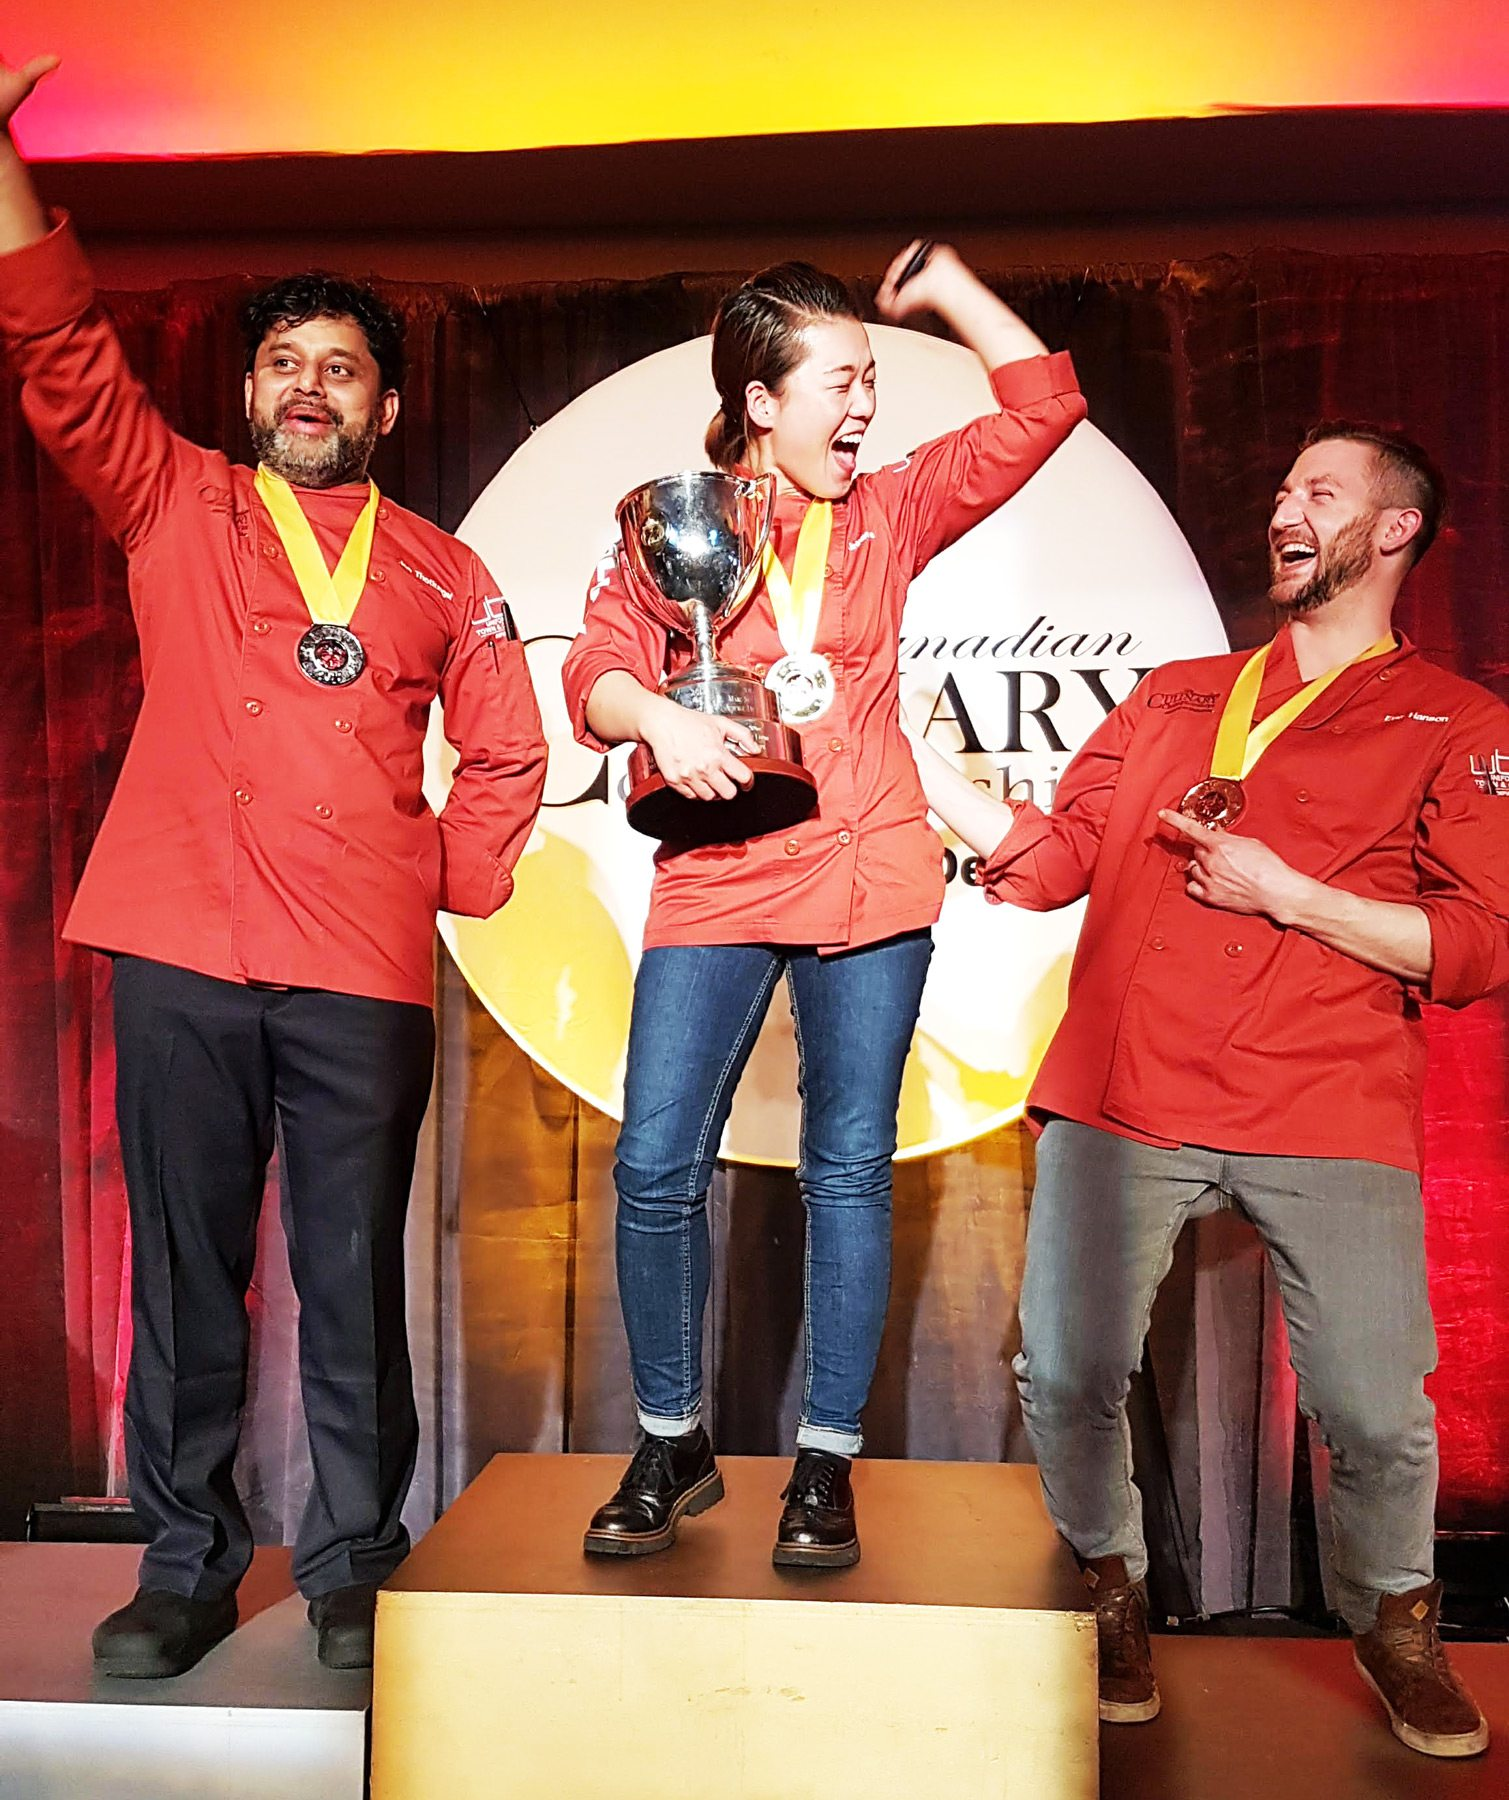 Calgary chef Jinhee Lee of Foreign Concept (centre) won the event. She is the first woman to take the top prize since 2007. The silver went to Ottawa's own Joe Thottungal from Coconut Lagoon (left); the bronze went to Eric Hanson of Prairie Noodle Shop in Edmonton (right)